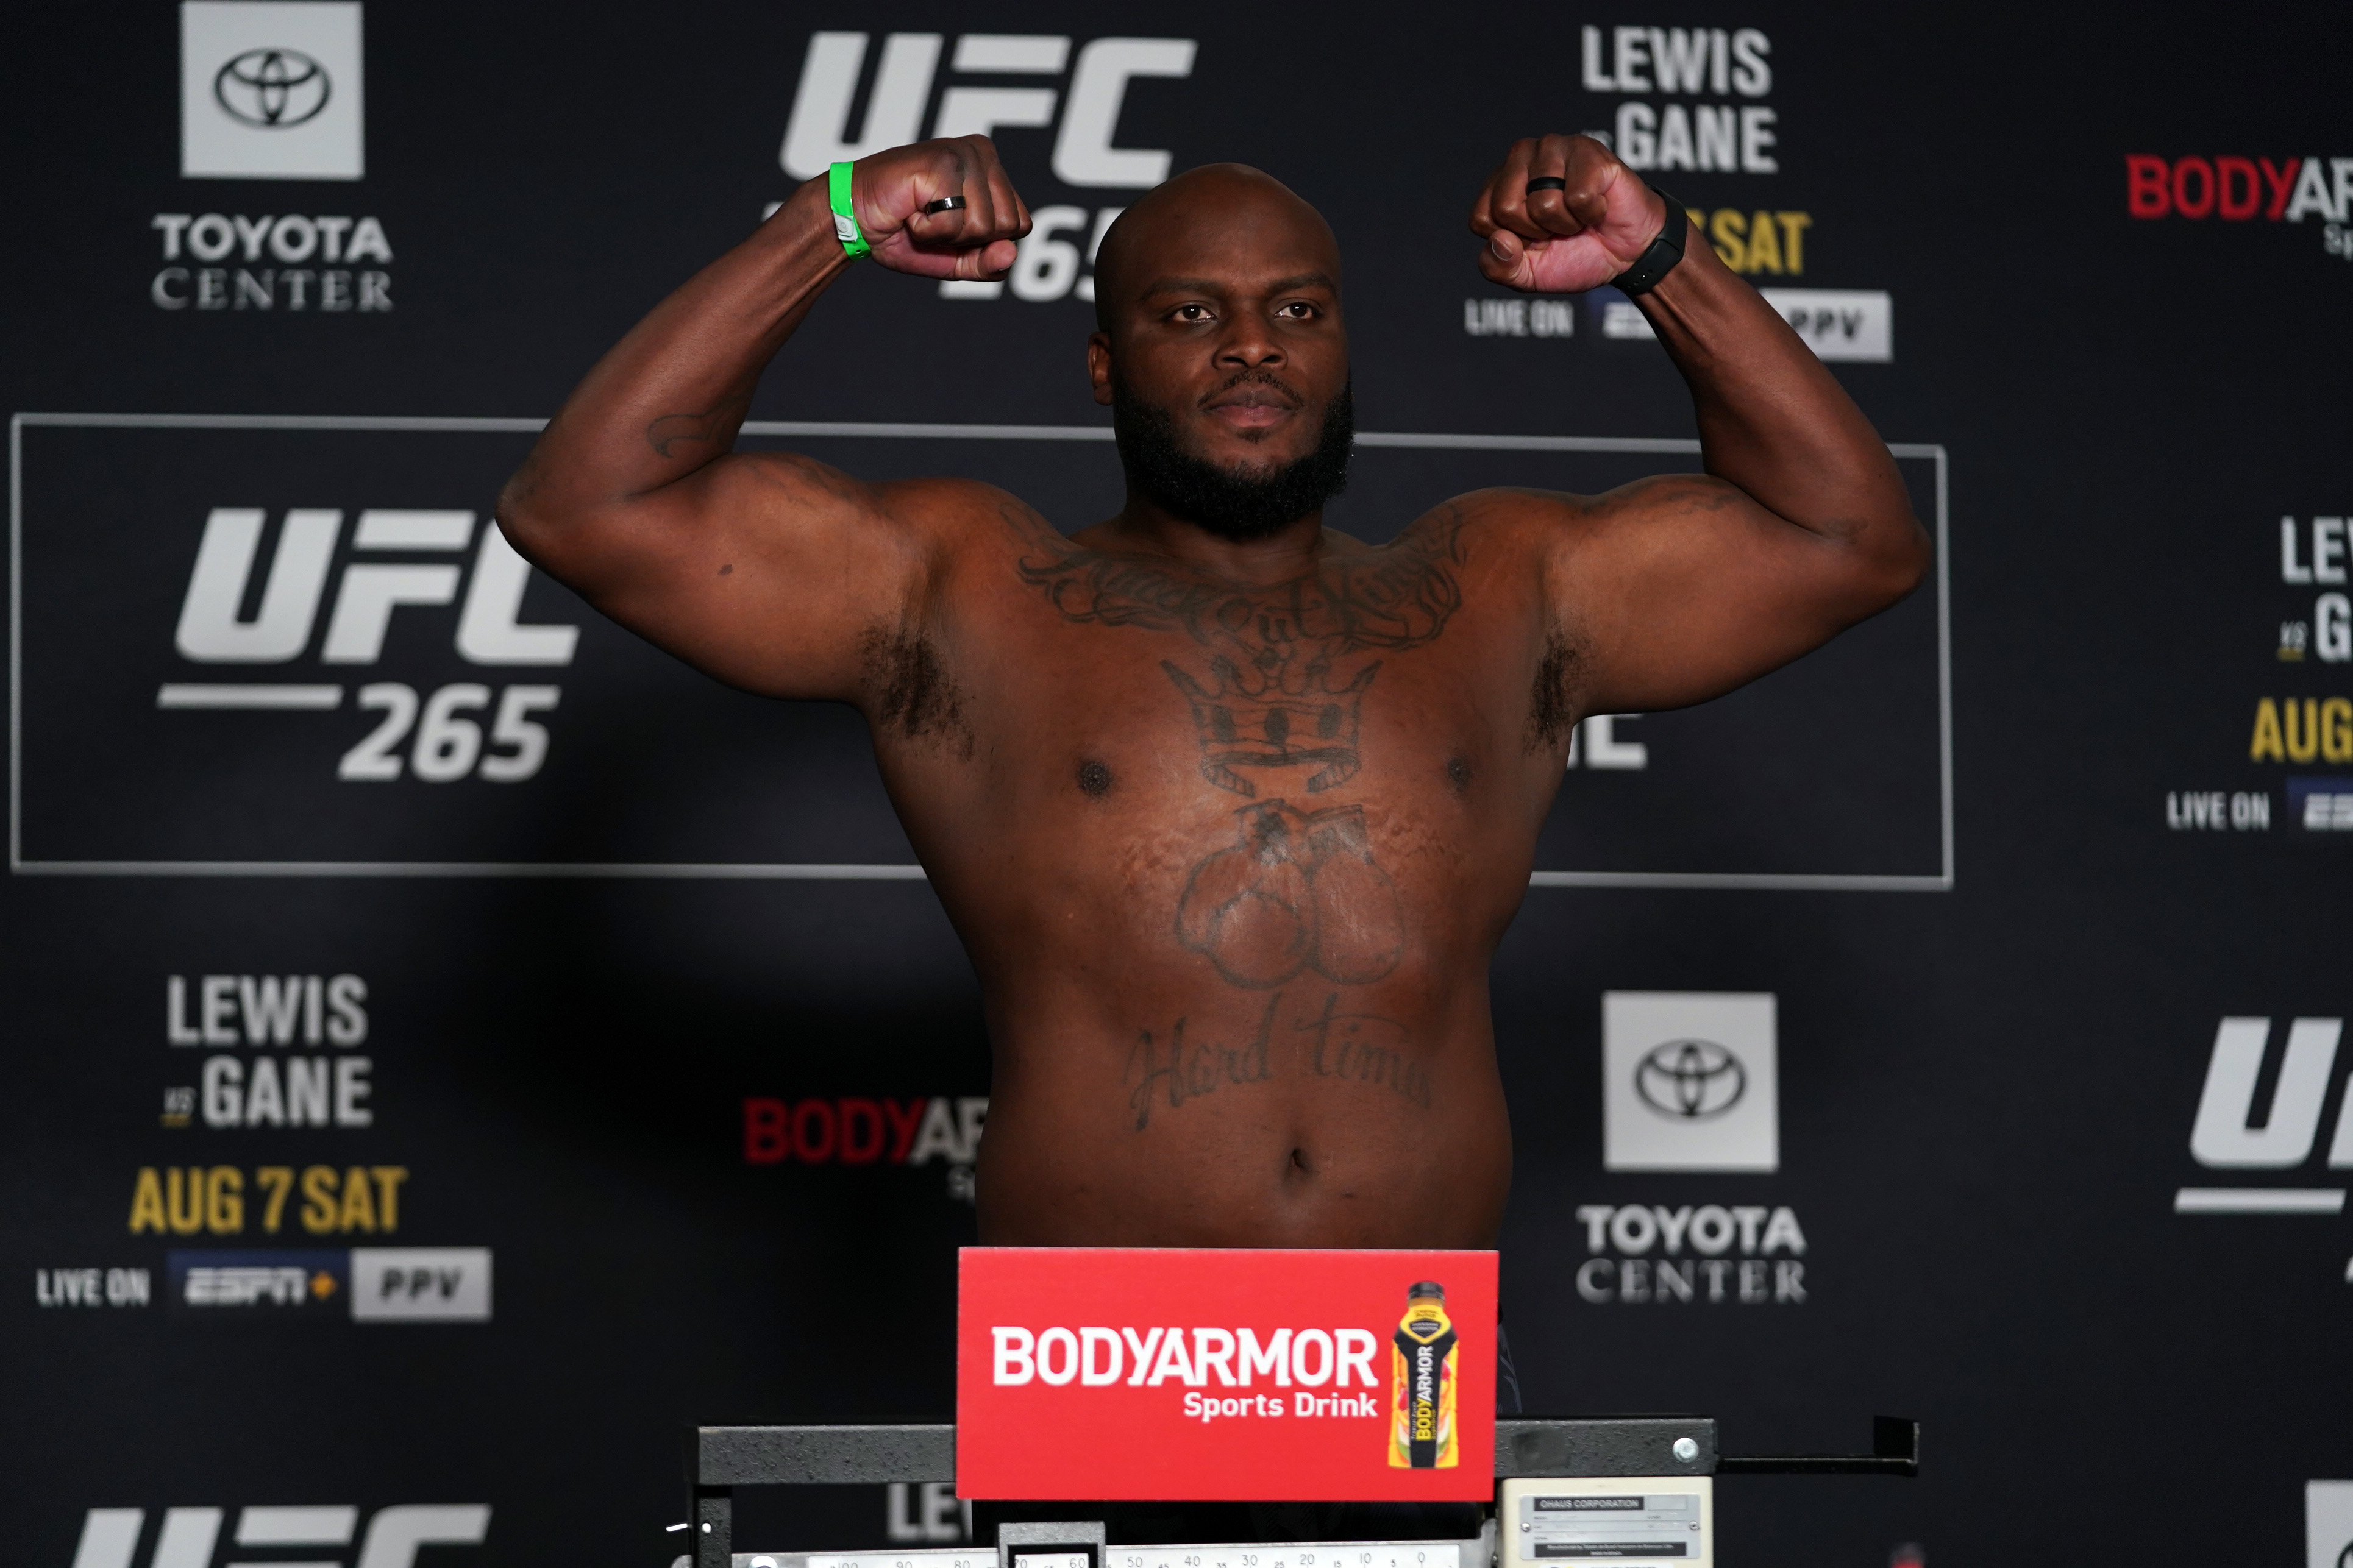 Derrick Lewis poses on the scale during the UFC 265 official weigh-in at Hyatt Regency Houston on August 06, 2021 in Houston, Texas.